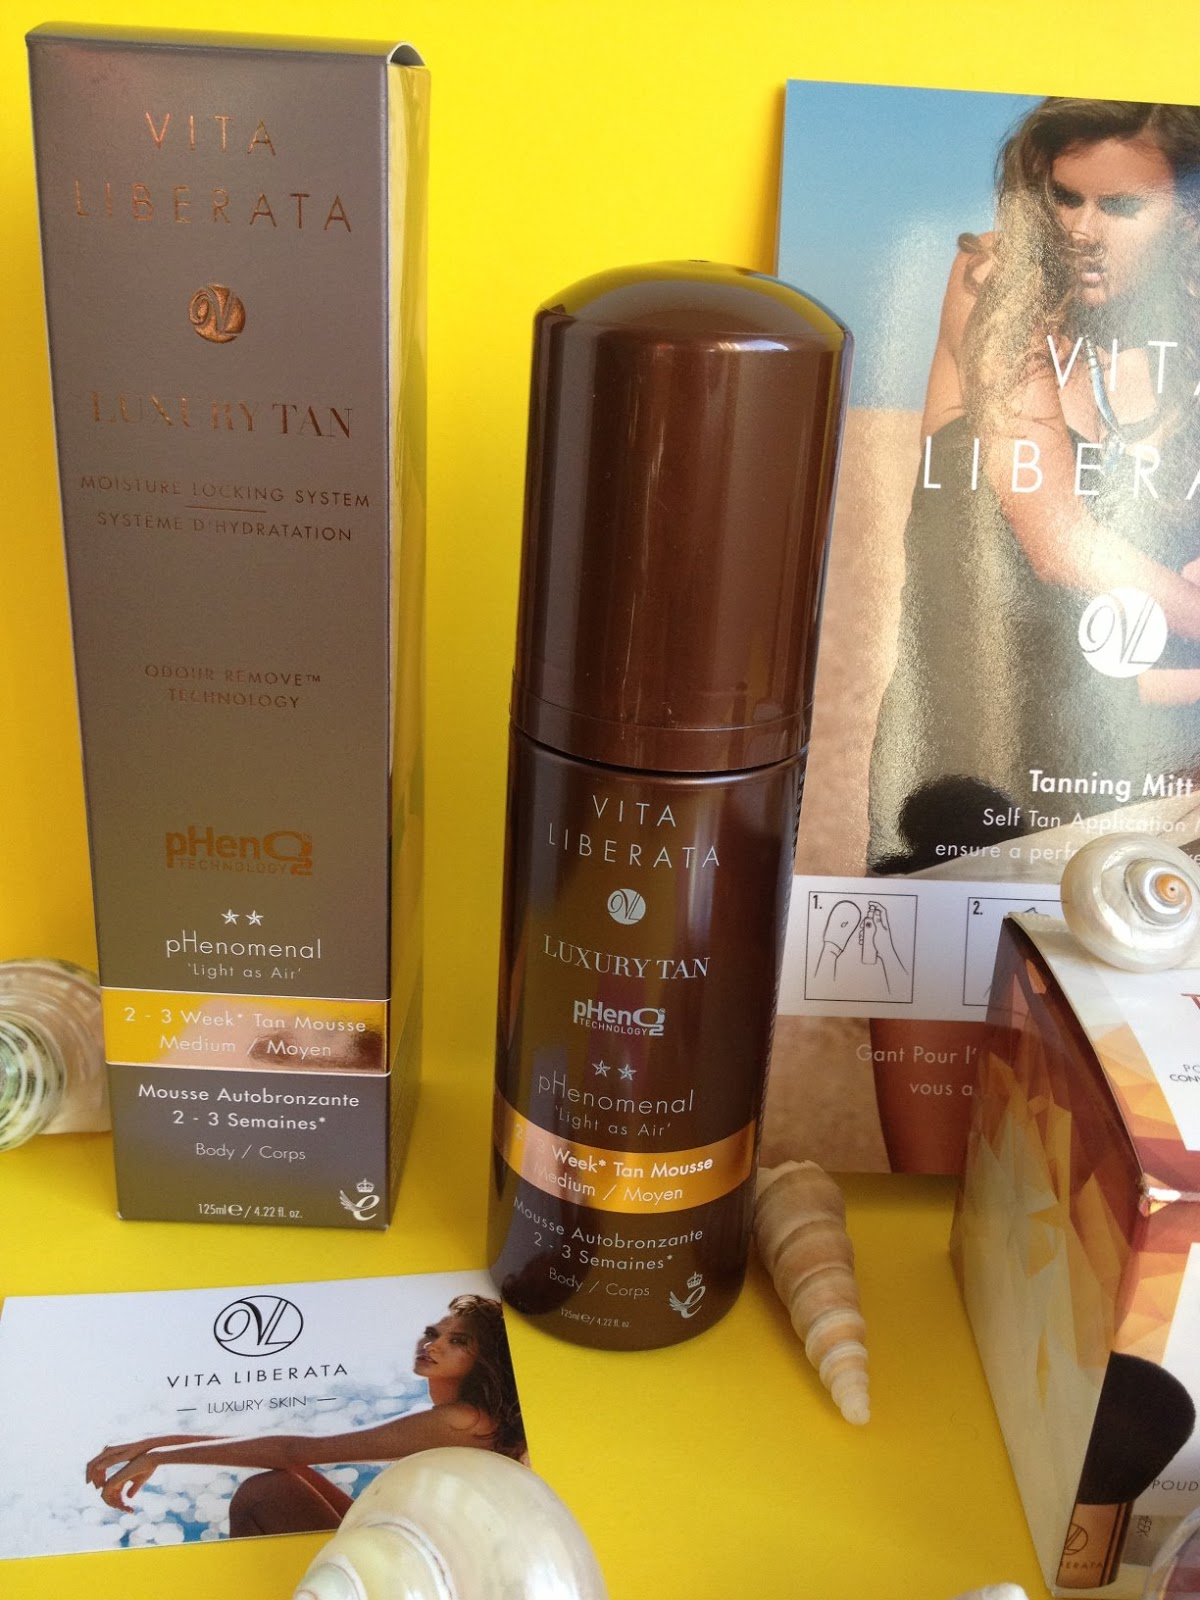 How to get a tan quickly and safely with Vita Liberata on Fashion and Cookies fashion and Beauty blog: Phenomenal Luxury Tan Mousse